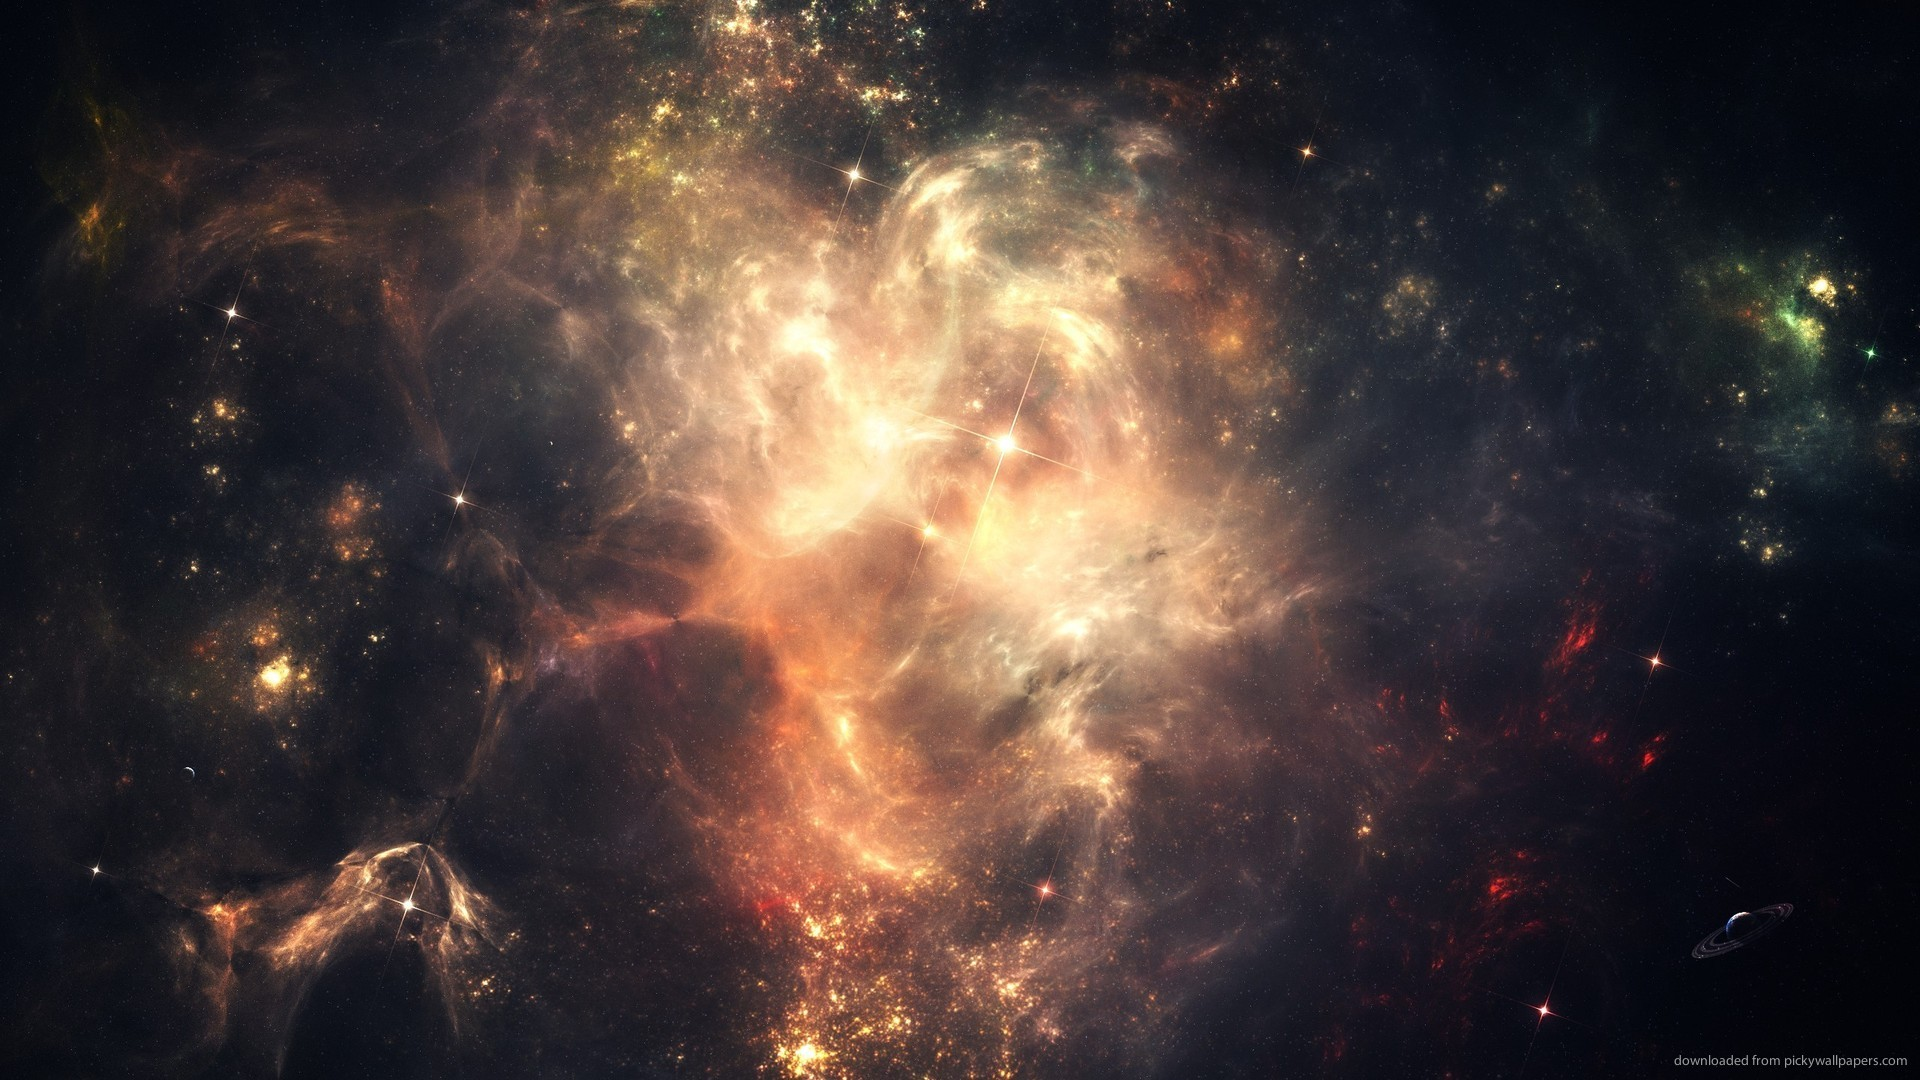 Galaxy HD wallpaper ·① Download free HD wallpapers for ...